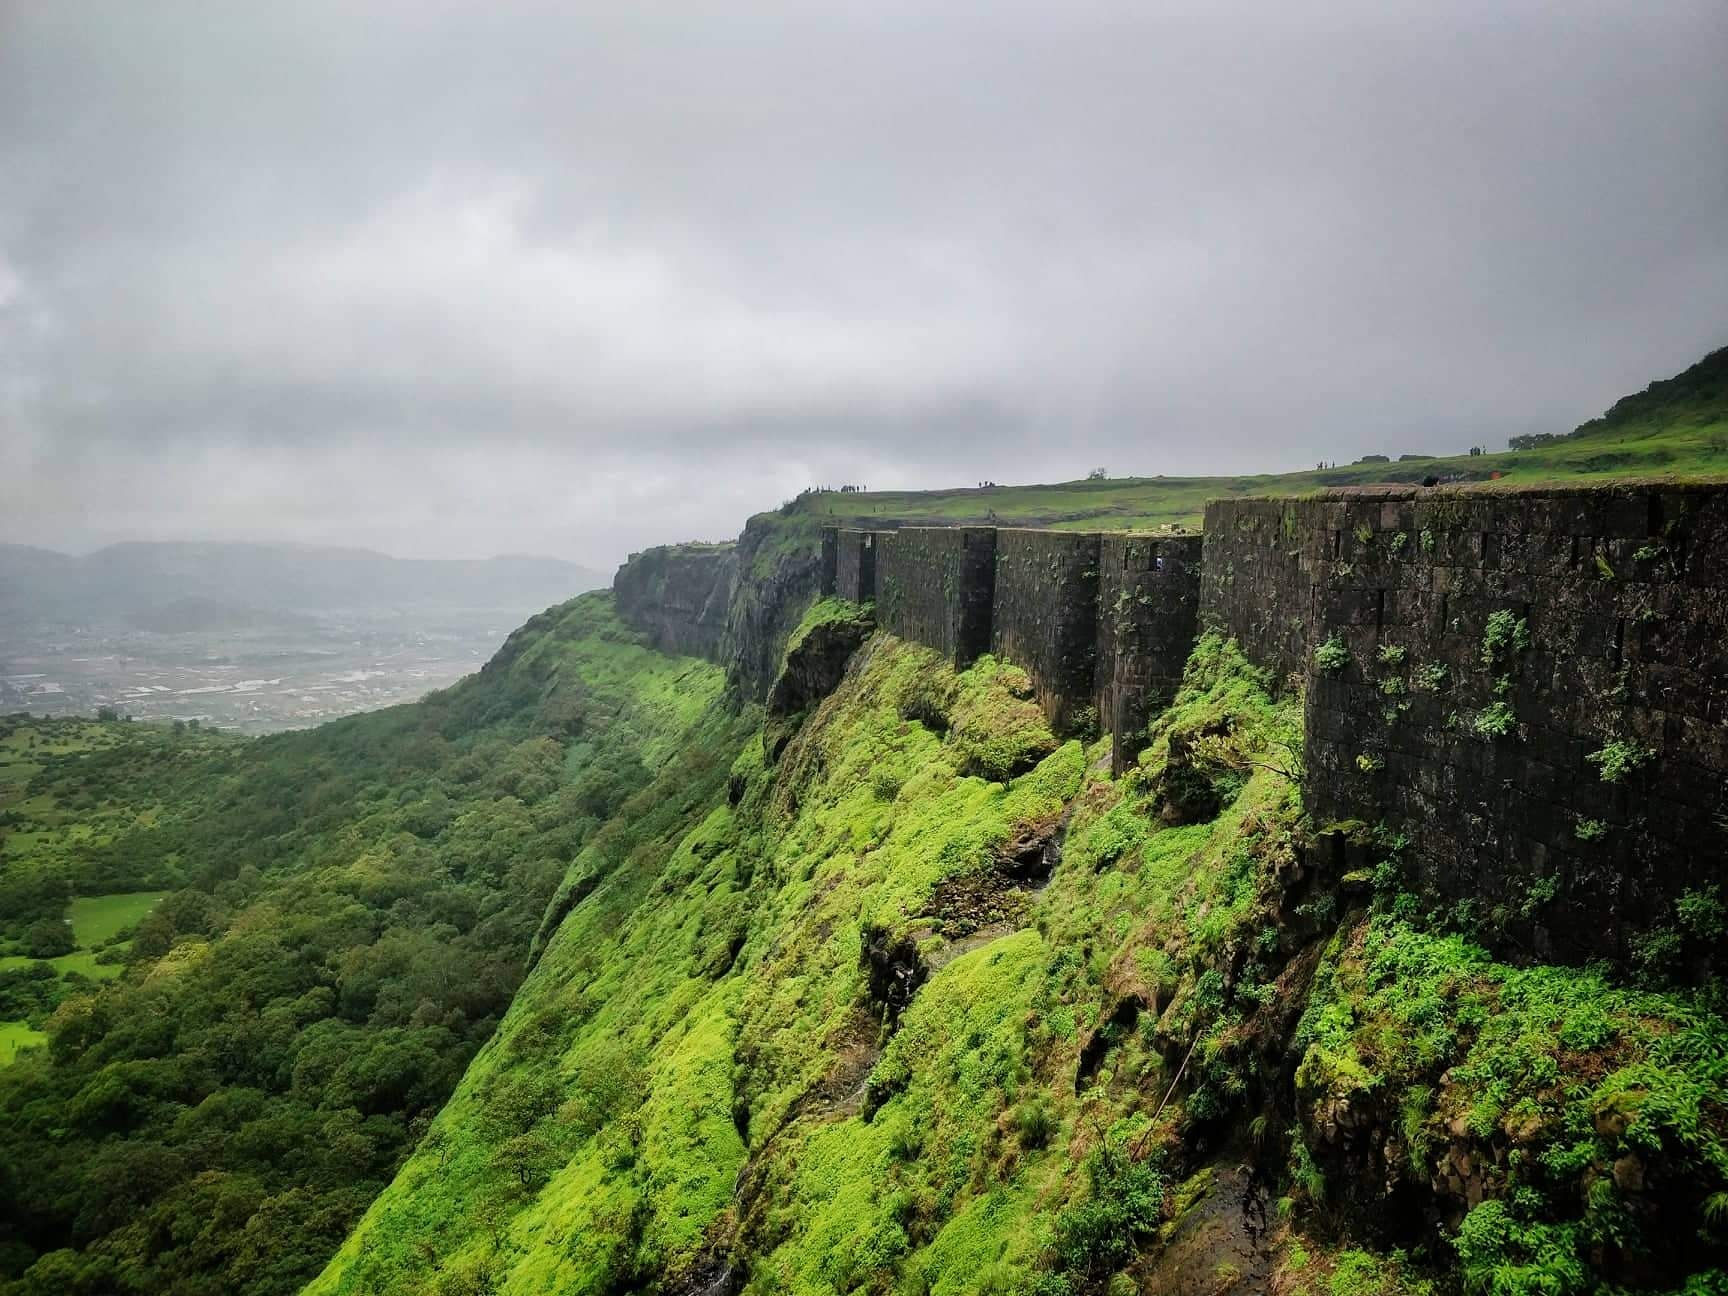 View from Walls of Rajah fort, Pune